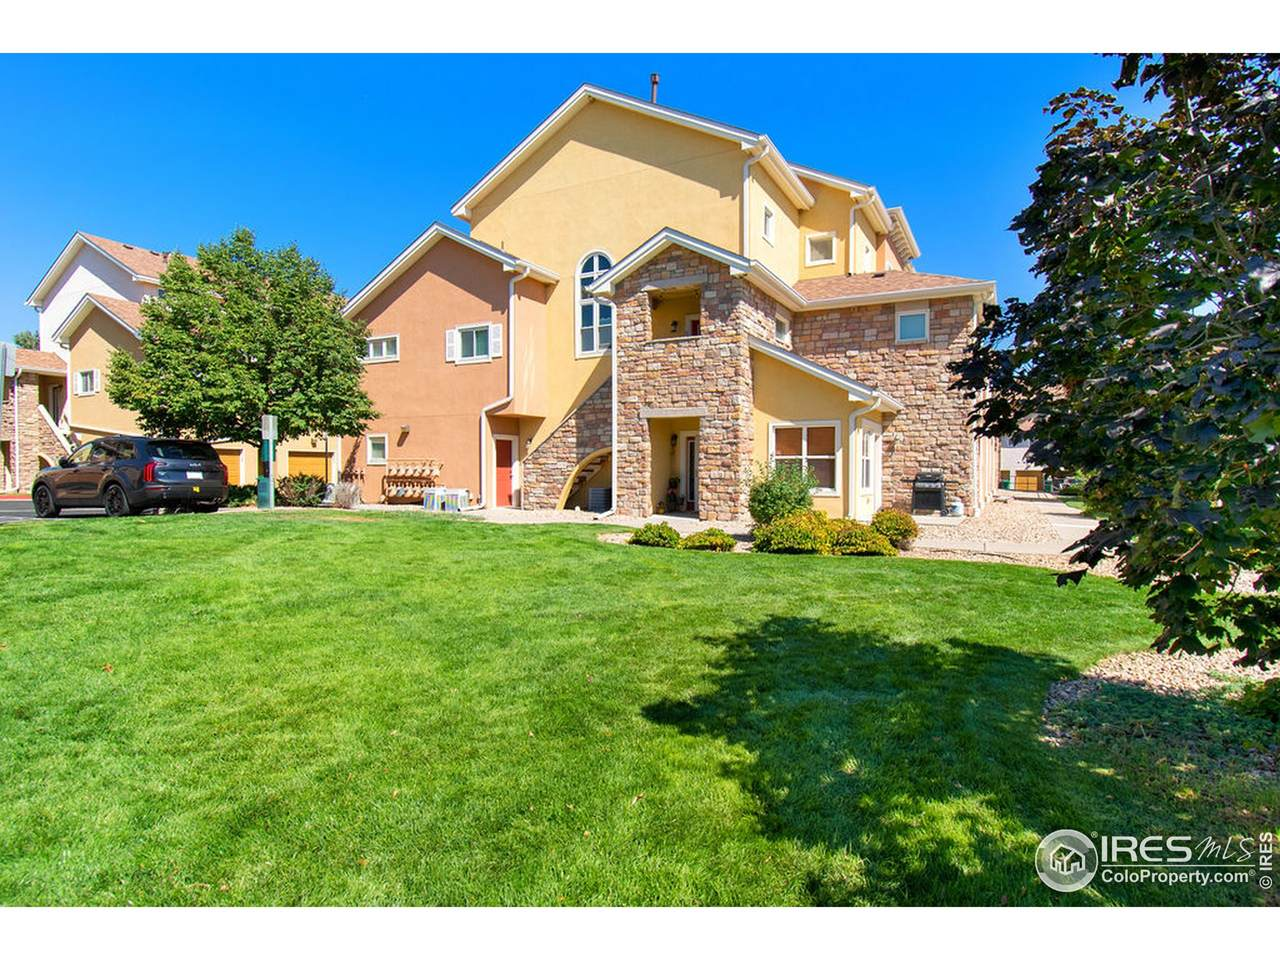 609 Lucca Dr - Photo 1